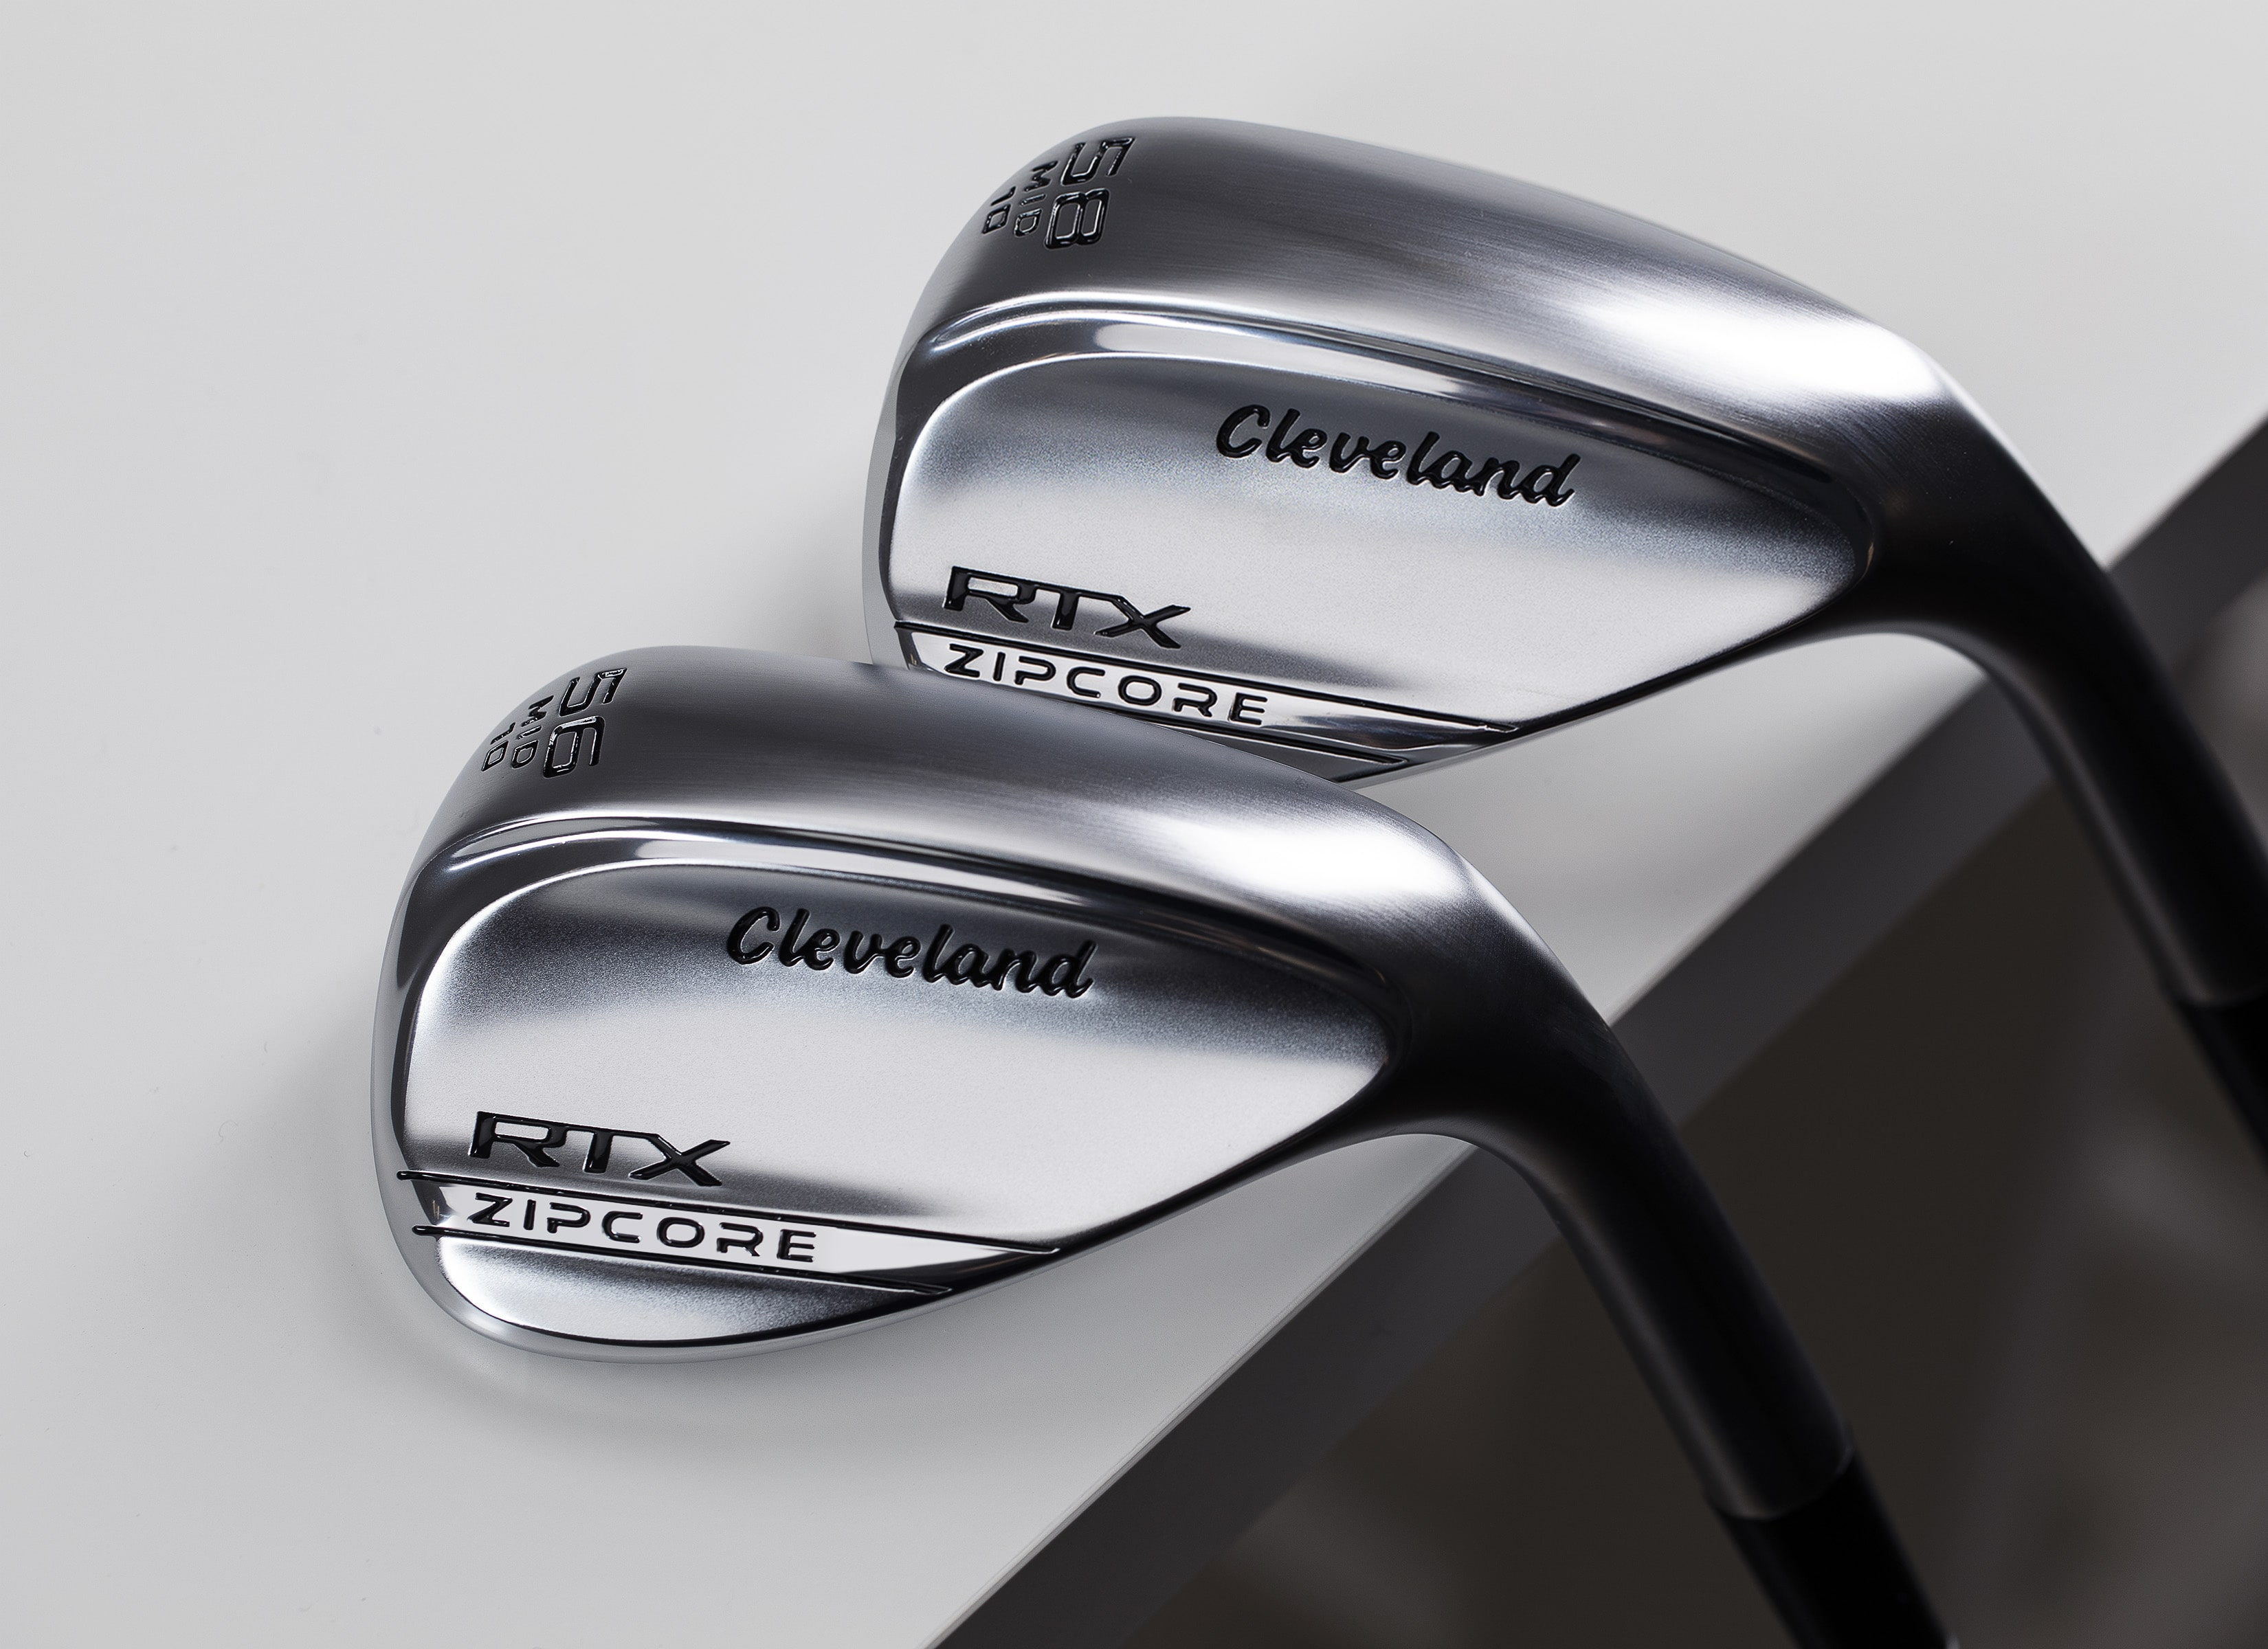 Cleveland RTX ZipCore wedges deliver on all shots for all golfers